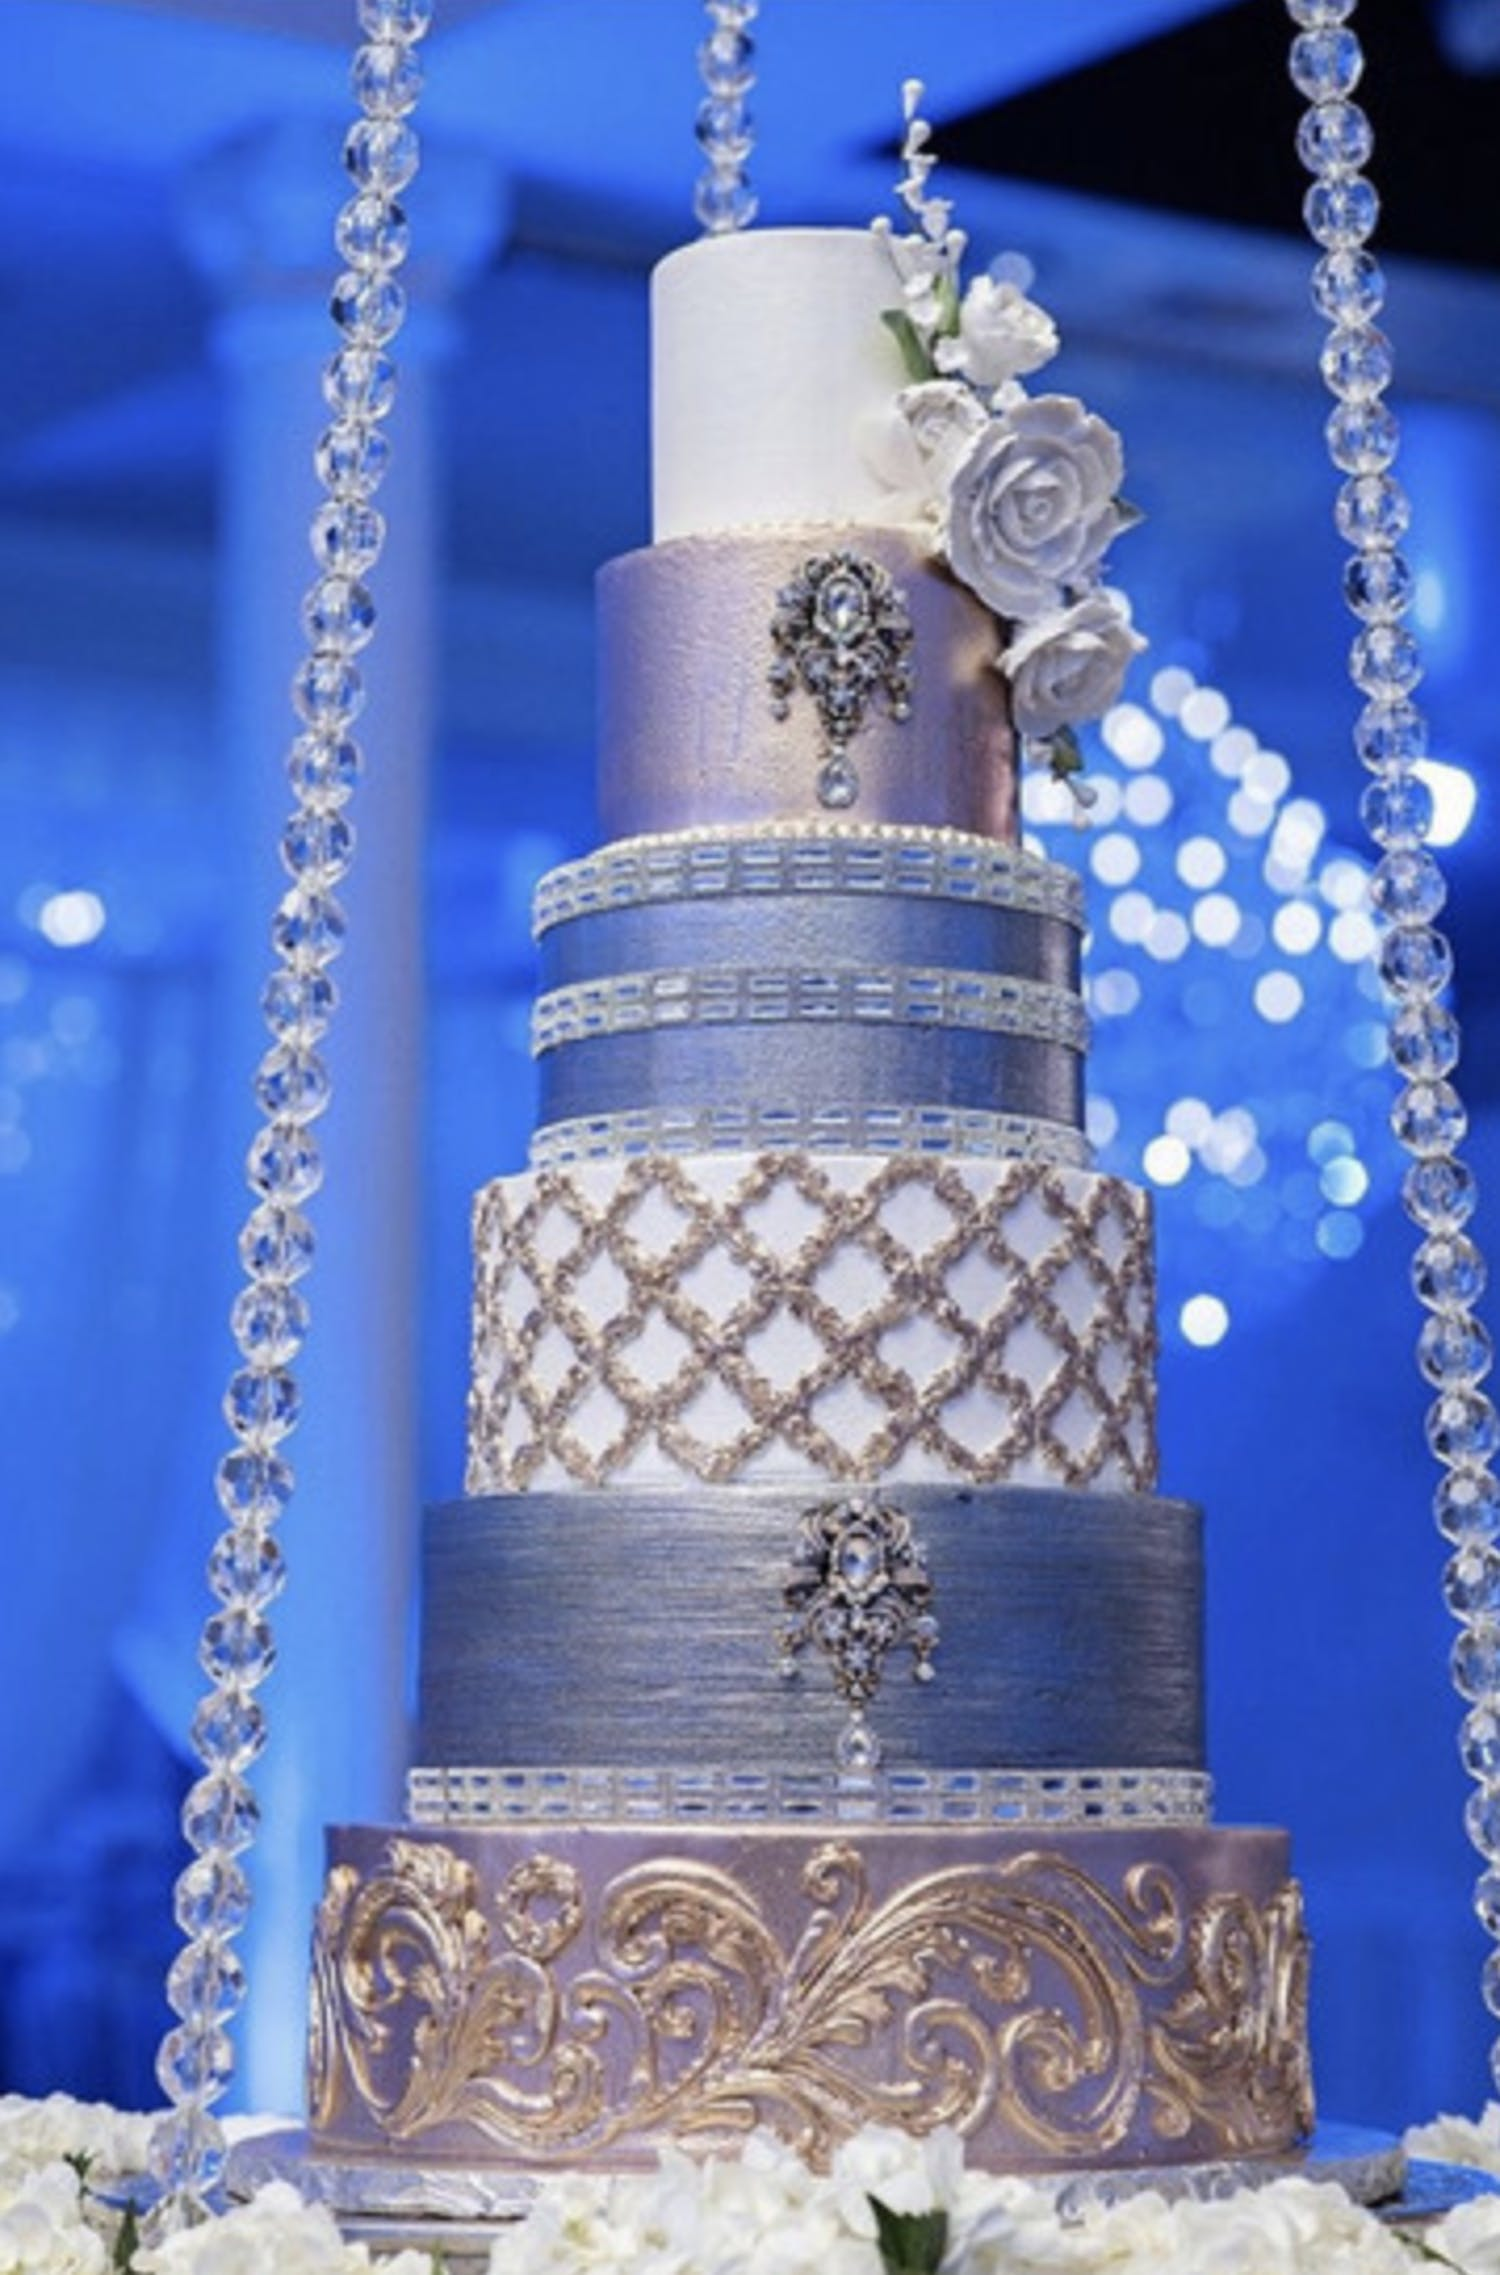 Six-tier metallic silver wedding cake with Jeweled Details | PartySlate